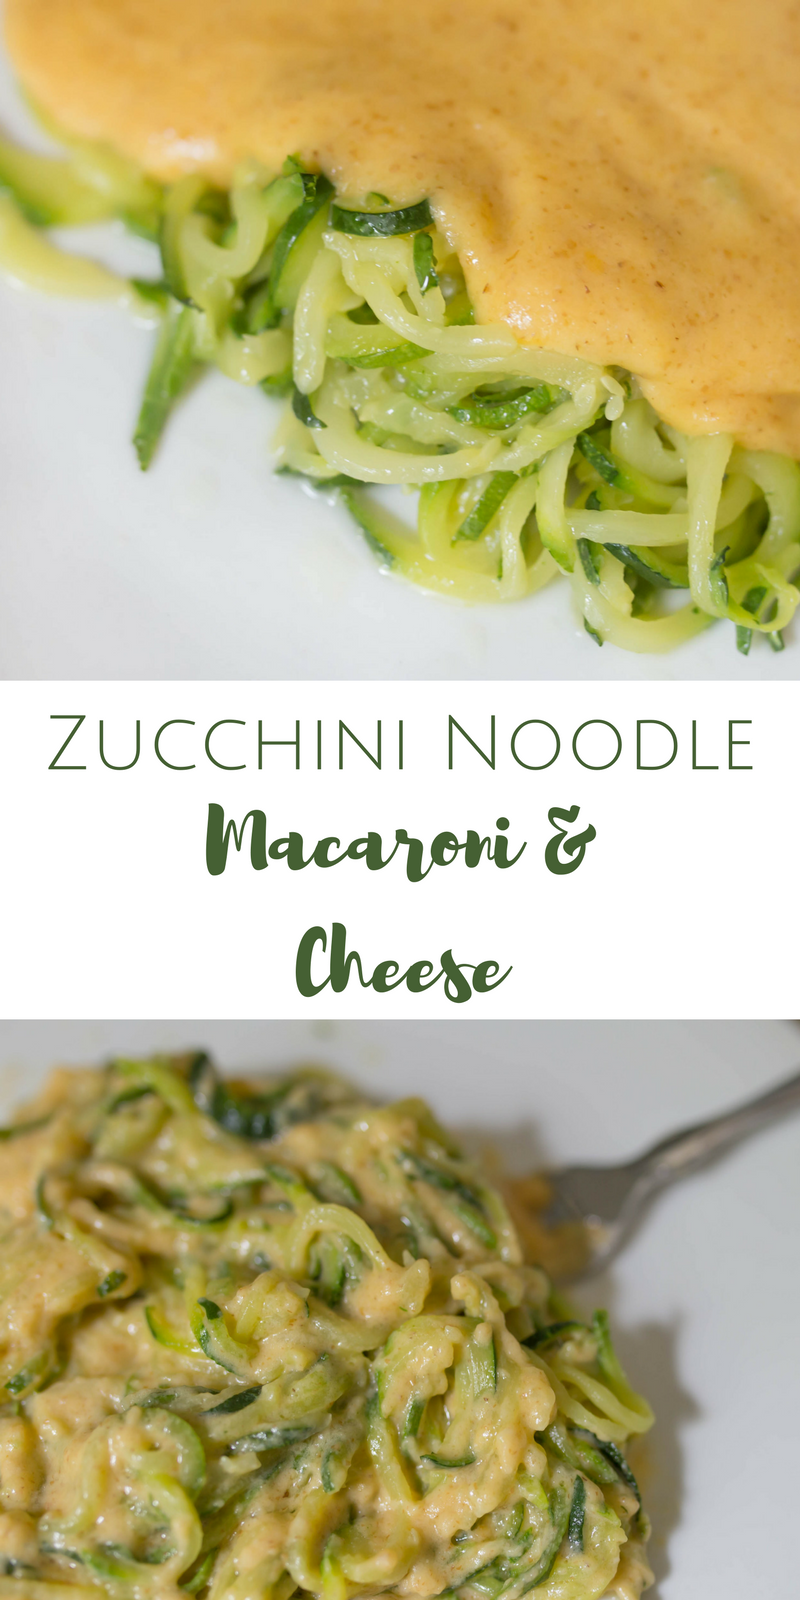 Zucchini Noodle (zoodle) Macaroni & Cheese